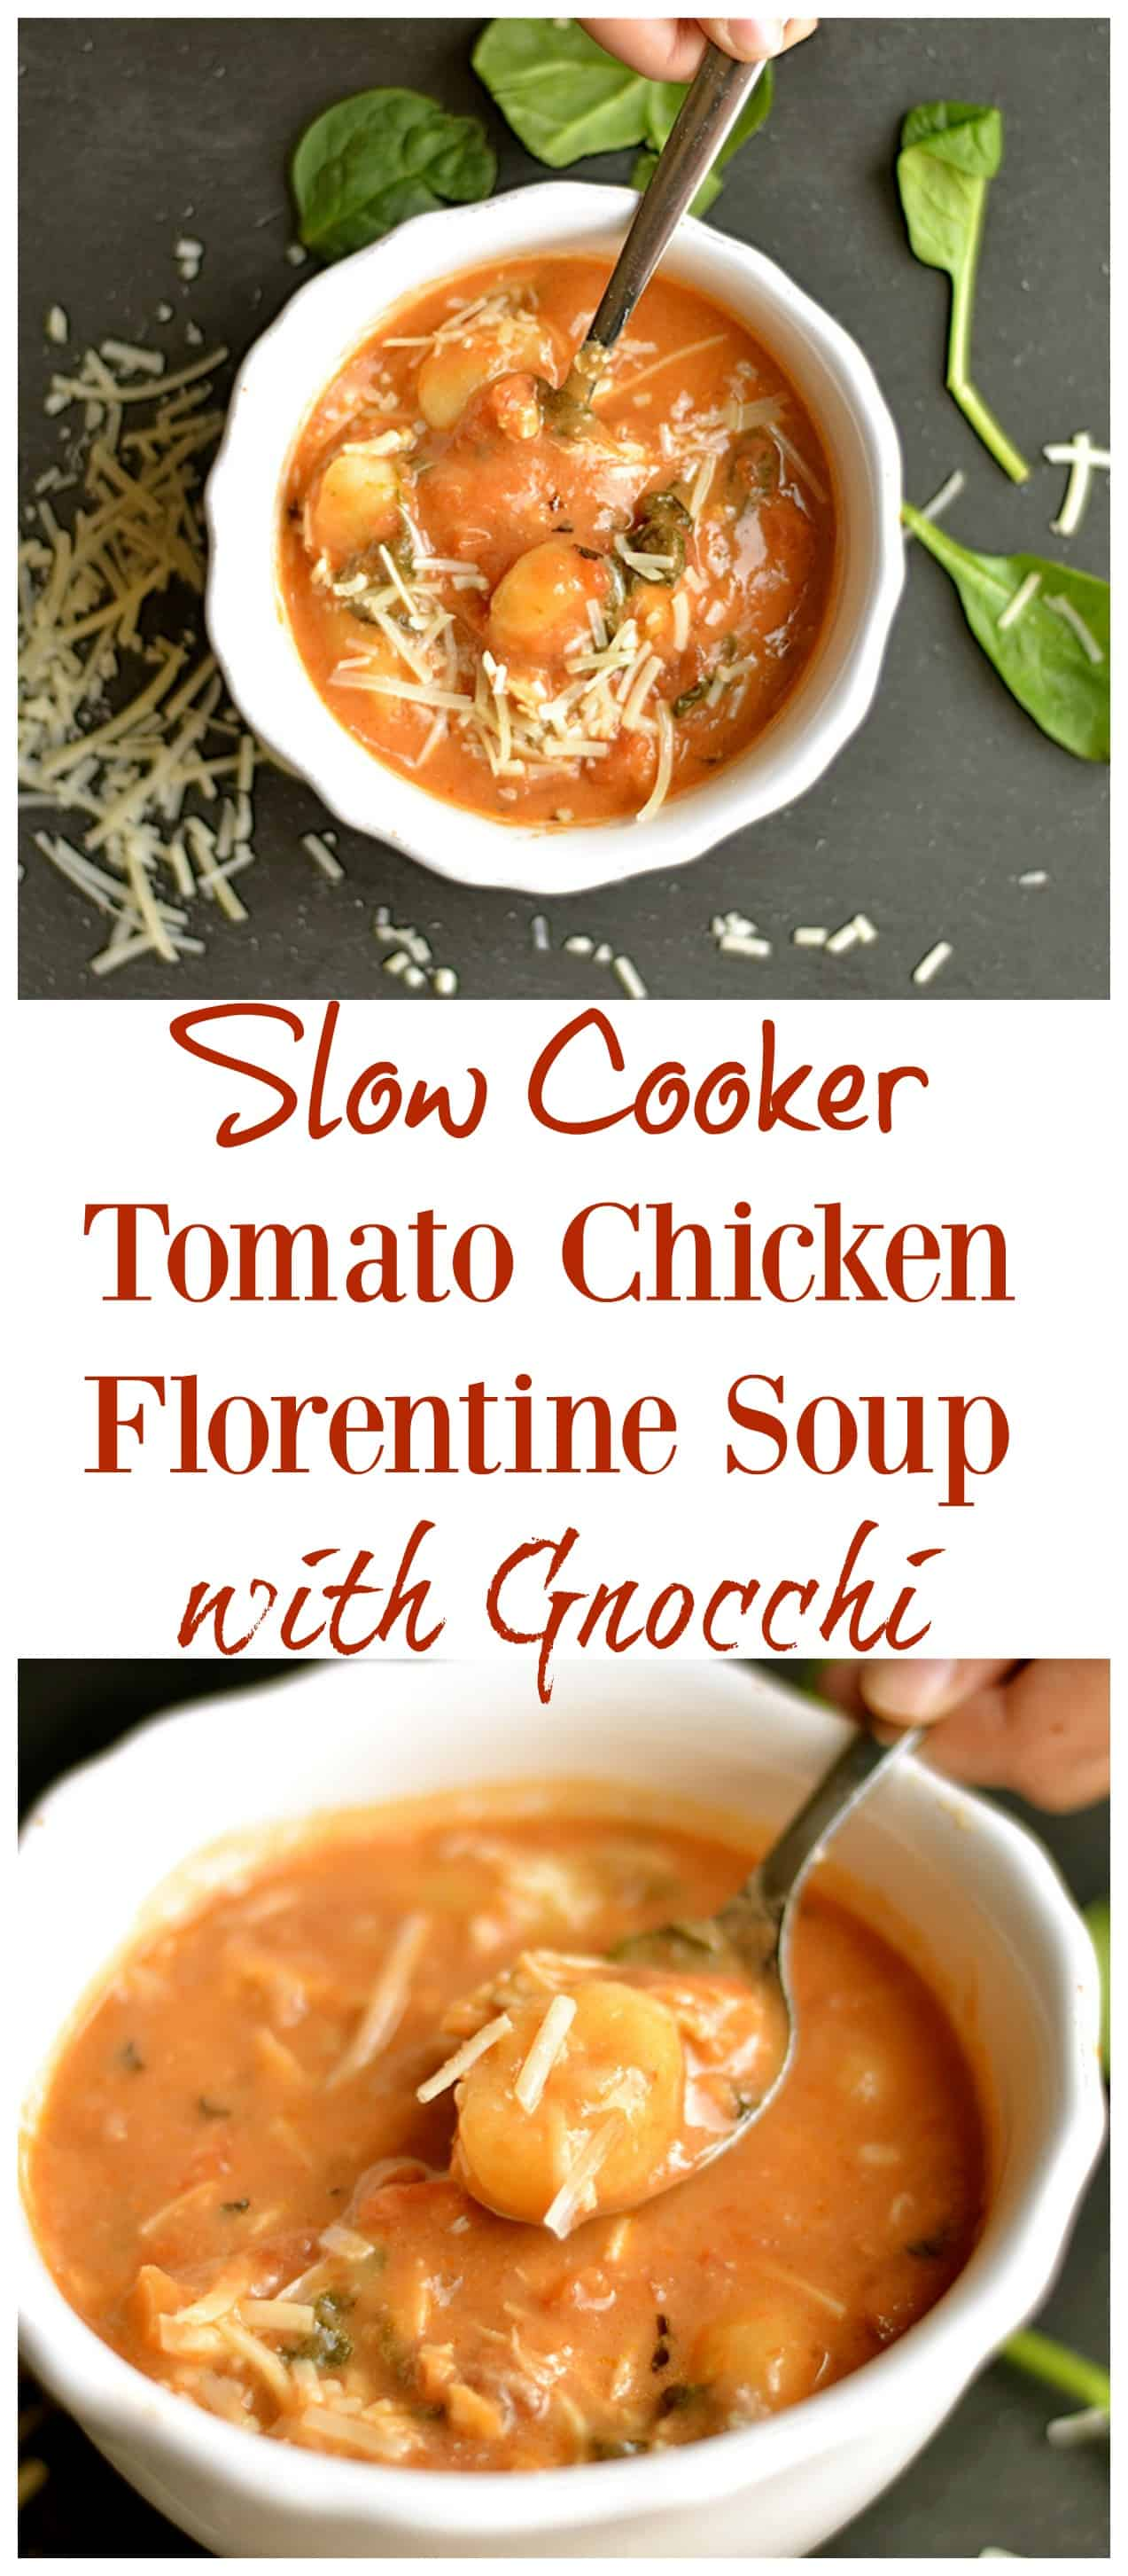 Slow Cooker Tomato Chicken Florentine Soup with Gnocchi ...